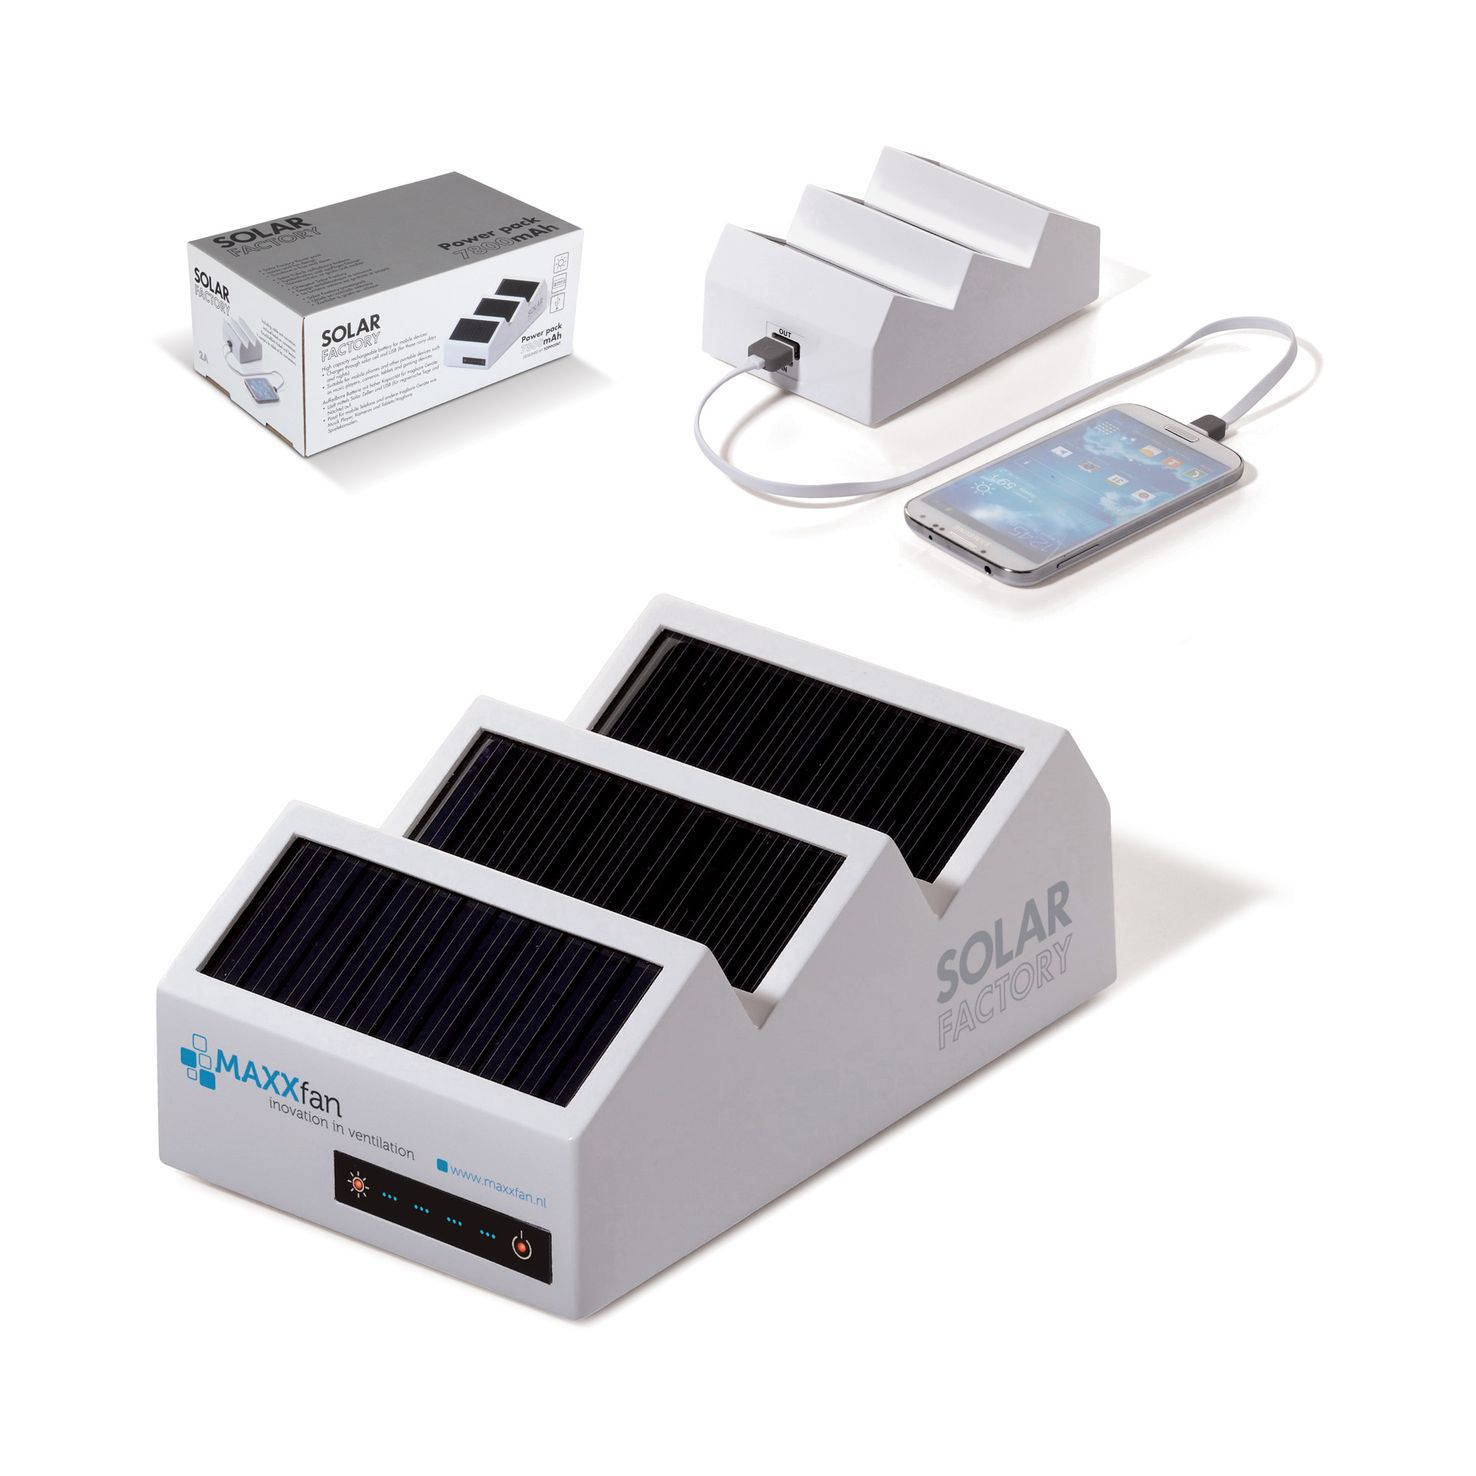 Solar powerbank fabriek 7800 mAh